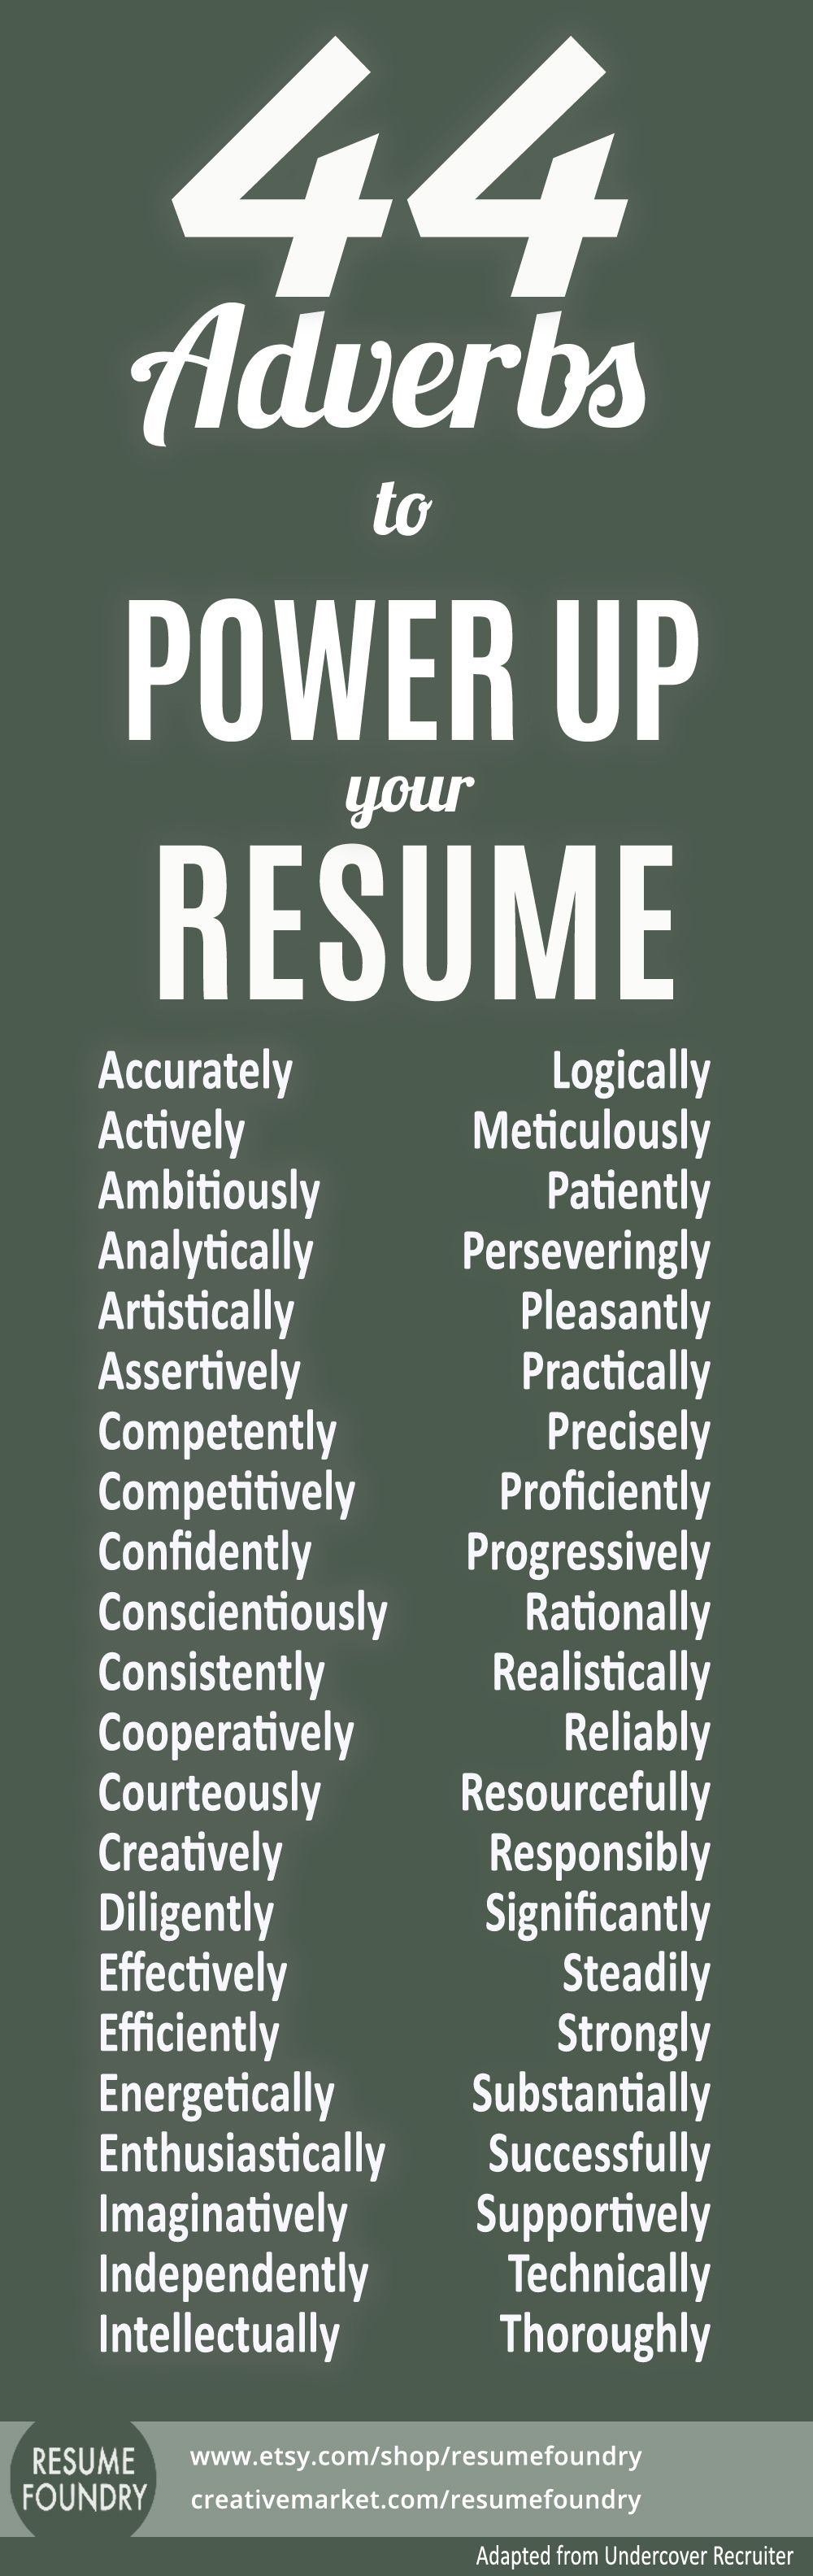 Quick Learner Resume Excel Resume Tips Resume Skill Words Resume Verbs Resume Experience  New Resume Format 2014 Pdf with Resume Development Word Resume Tips Resume Skill Words Resume Verbs Resume Experience Resume For Jobs With No Experience Excel